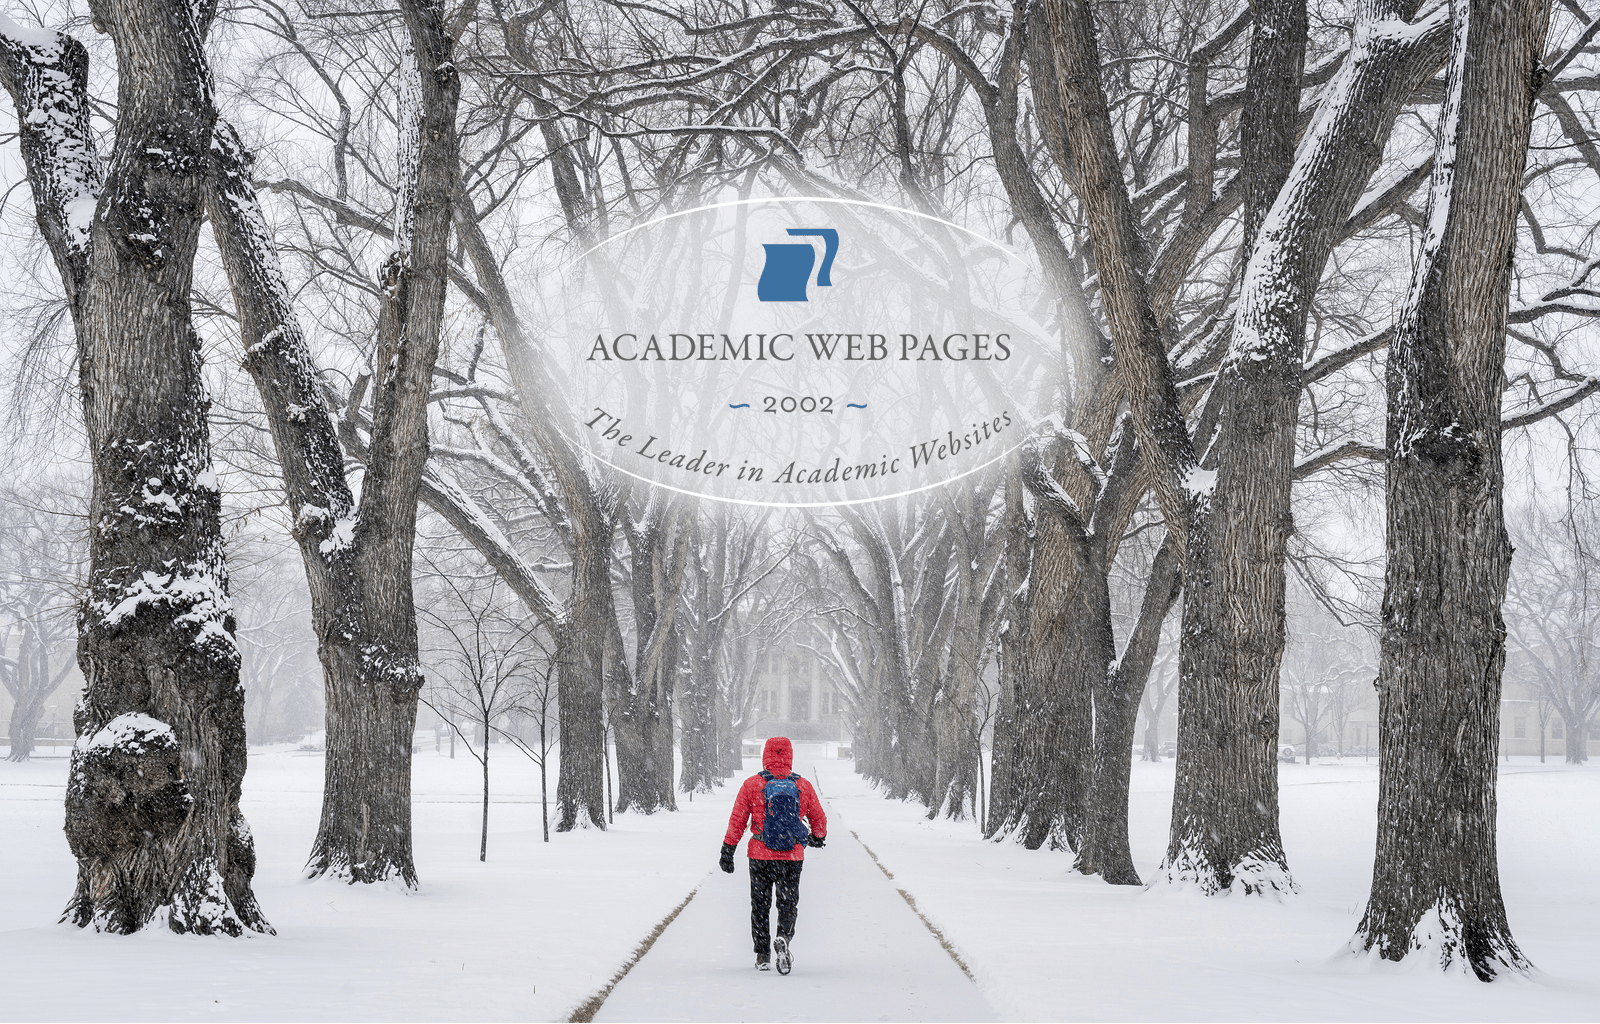 Academic Web Pages